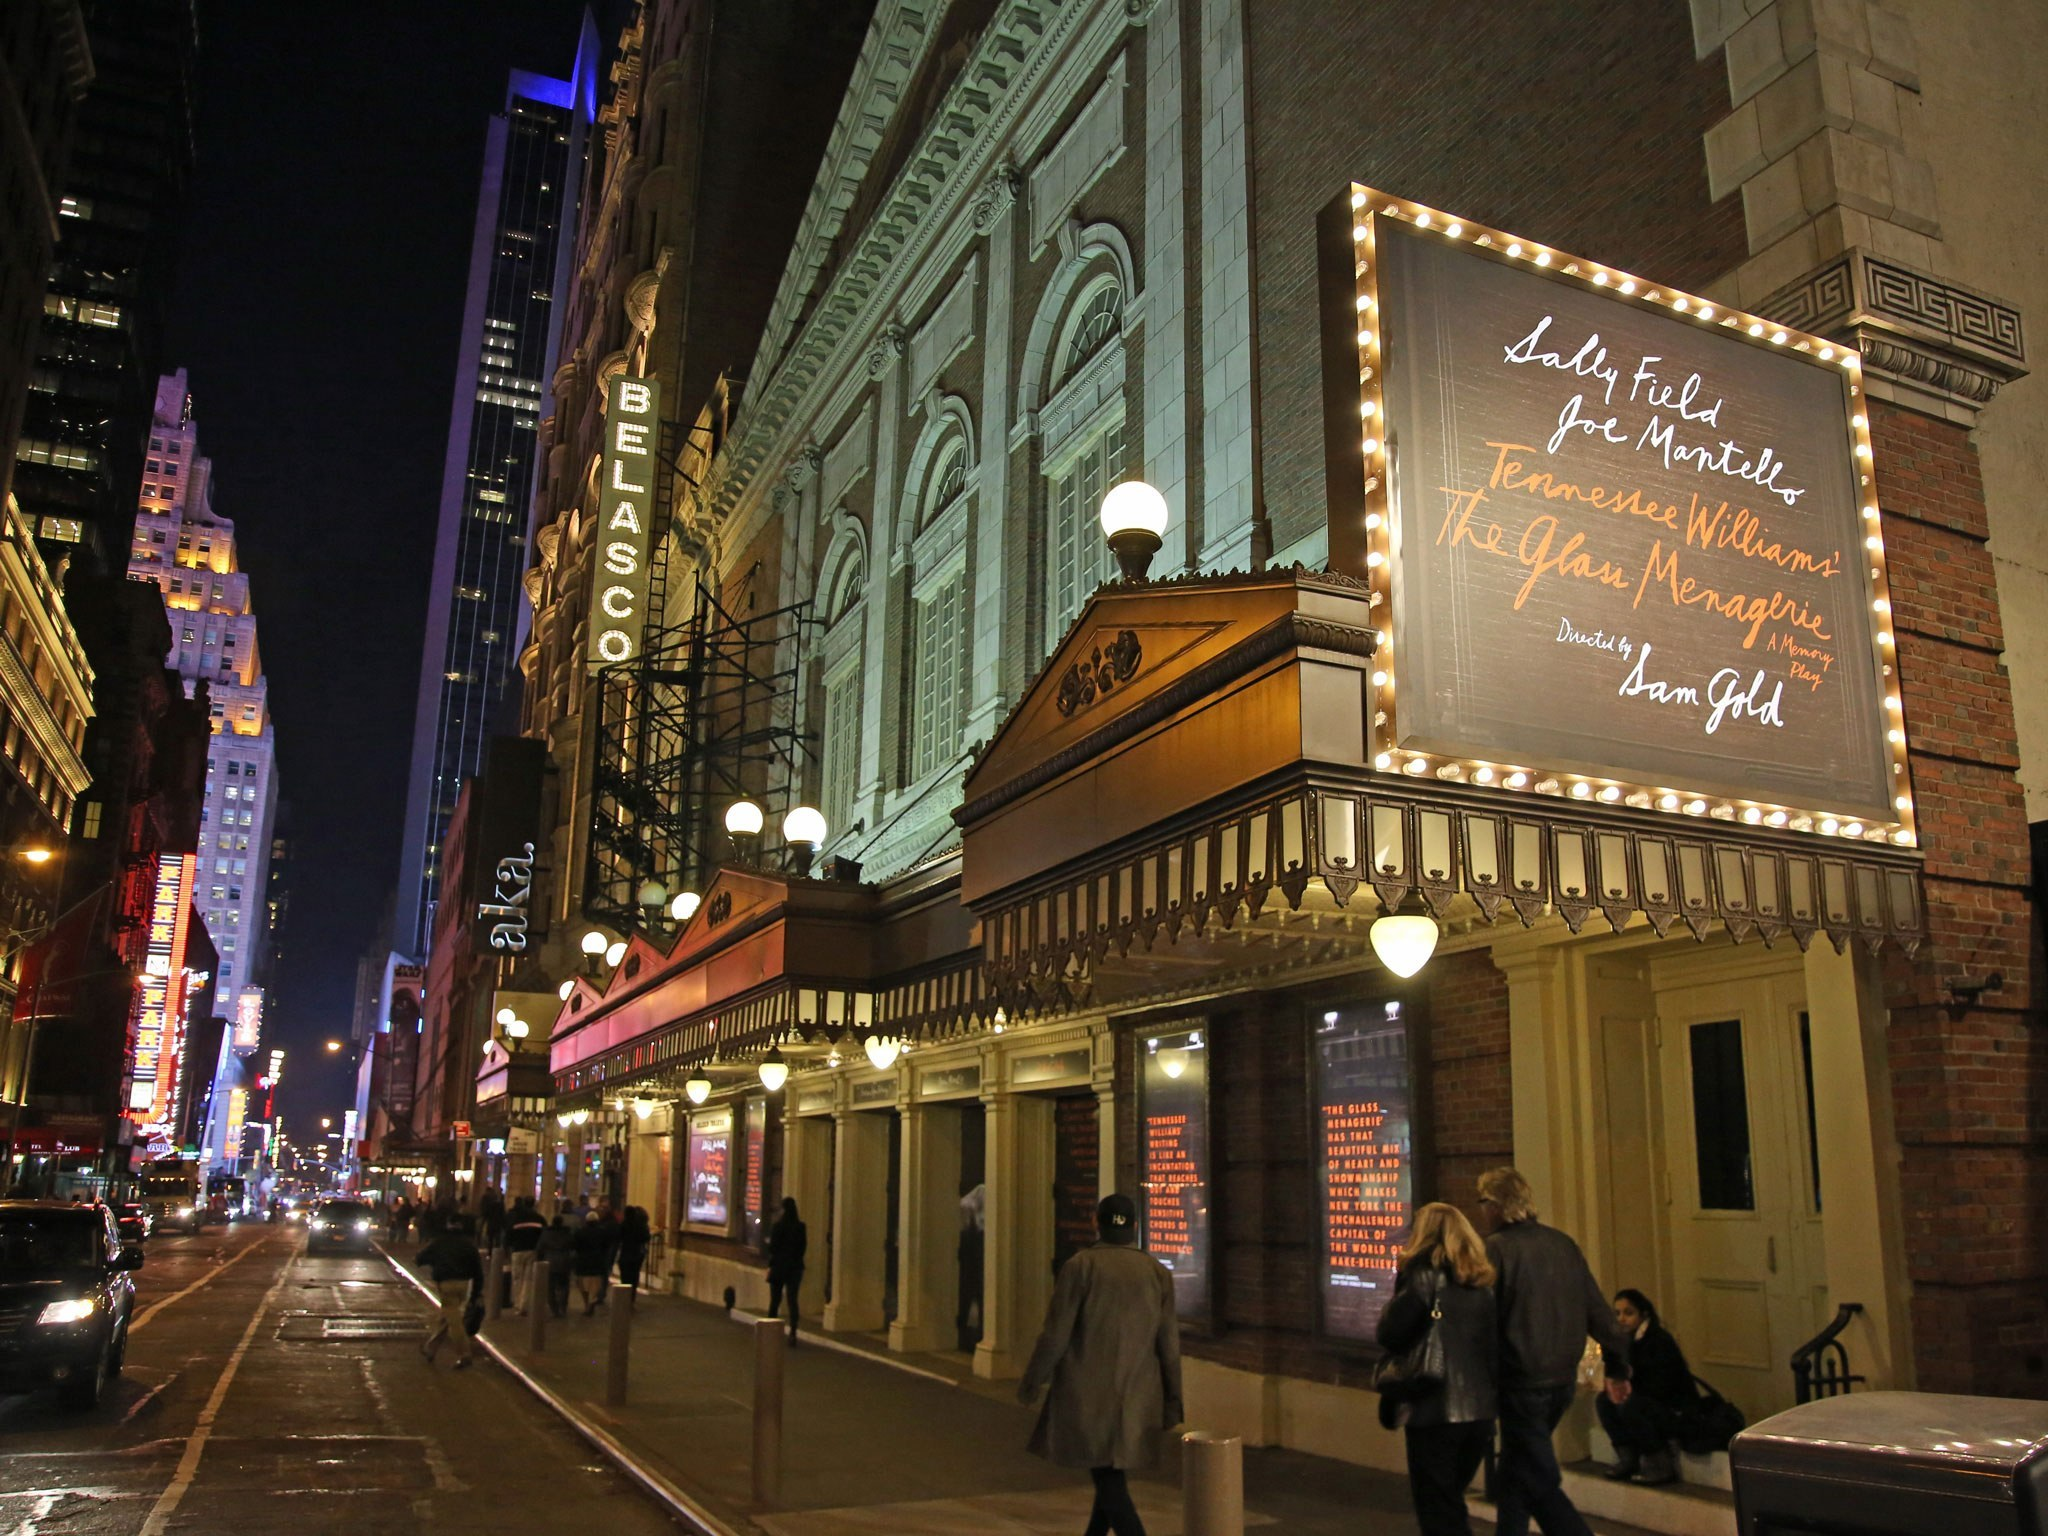 The Glass Menagerie (2017) Marquee